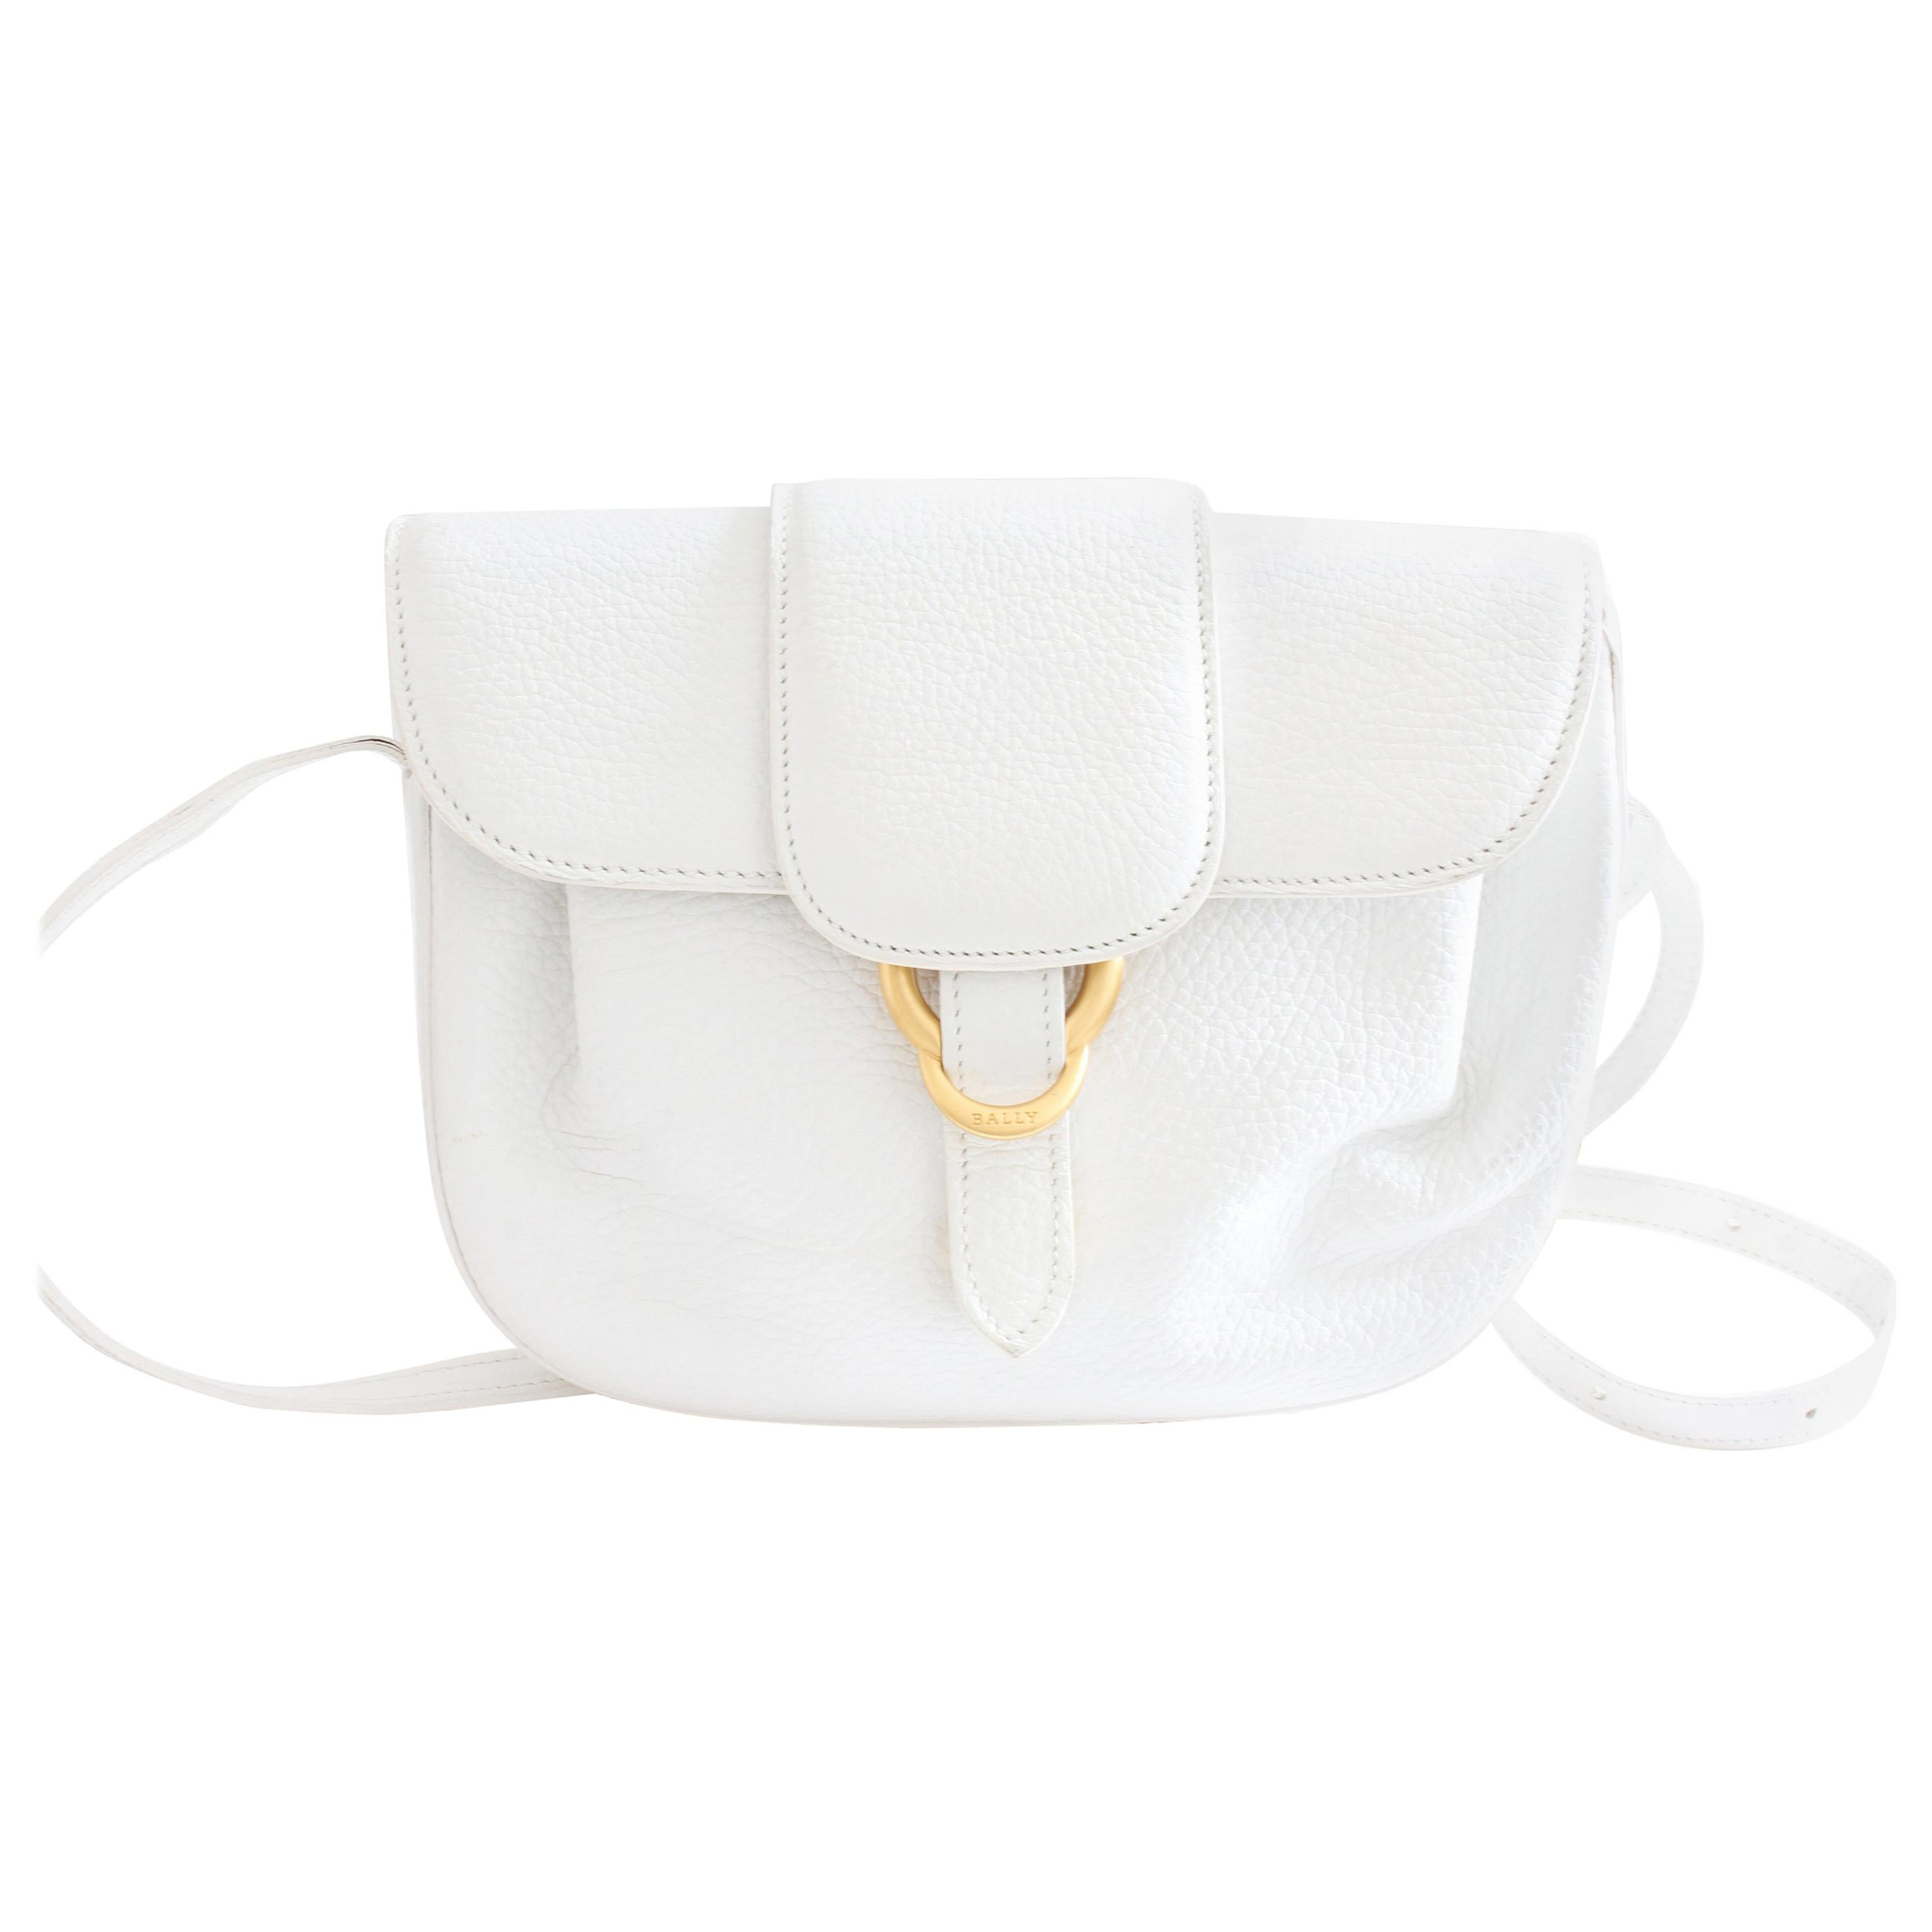 Bally White Pebbled Leather Top Flap Crossbody Shoulder Bag Italy